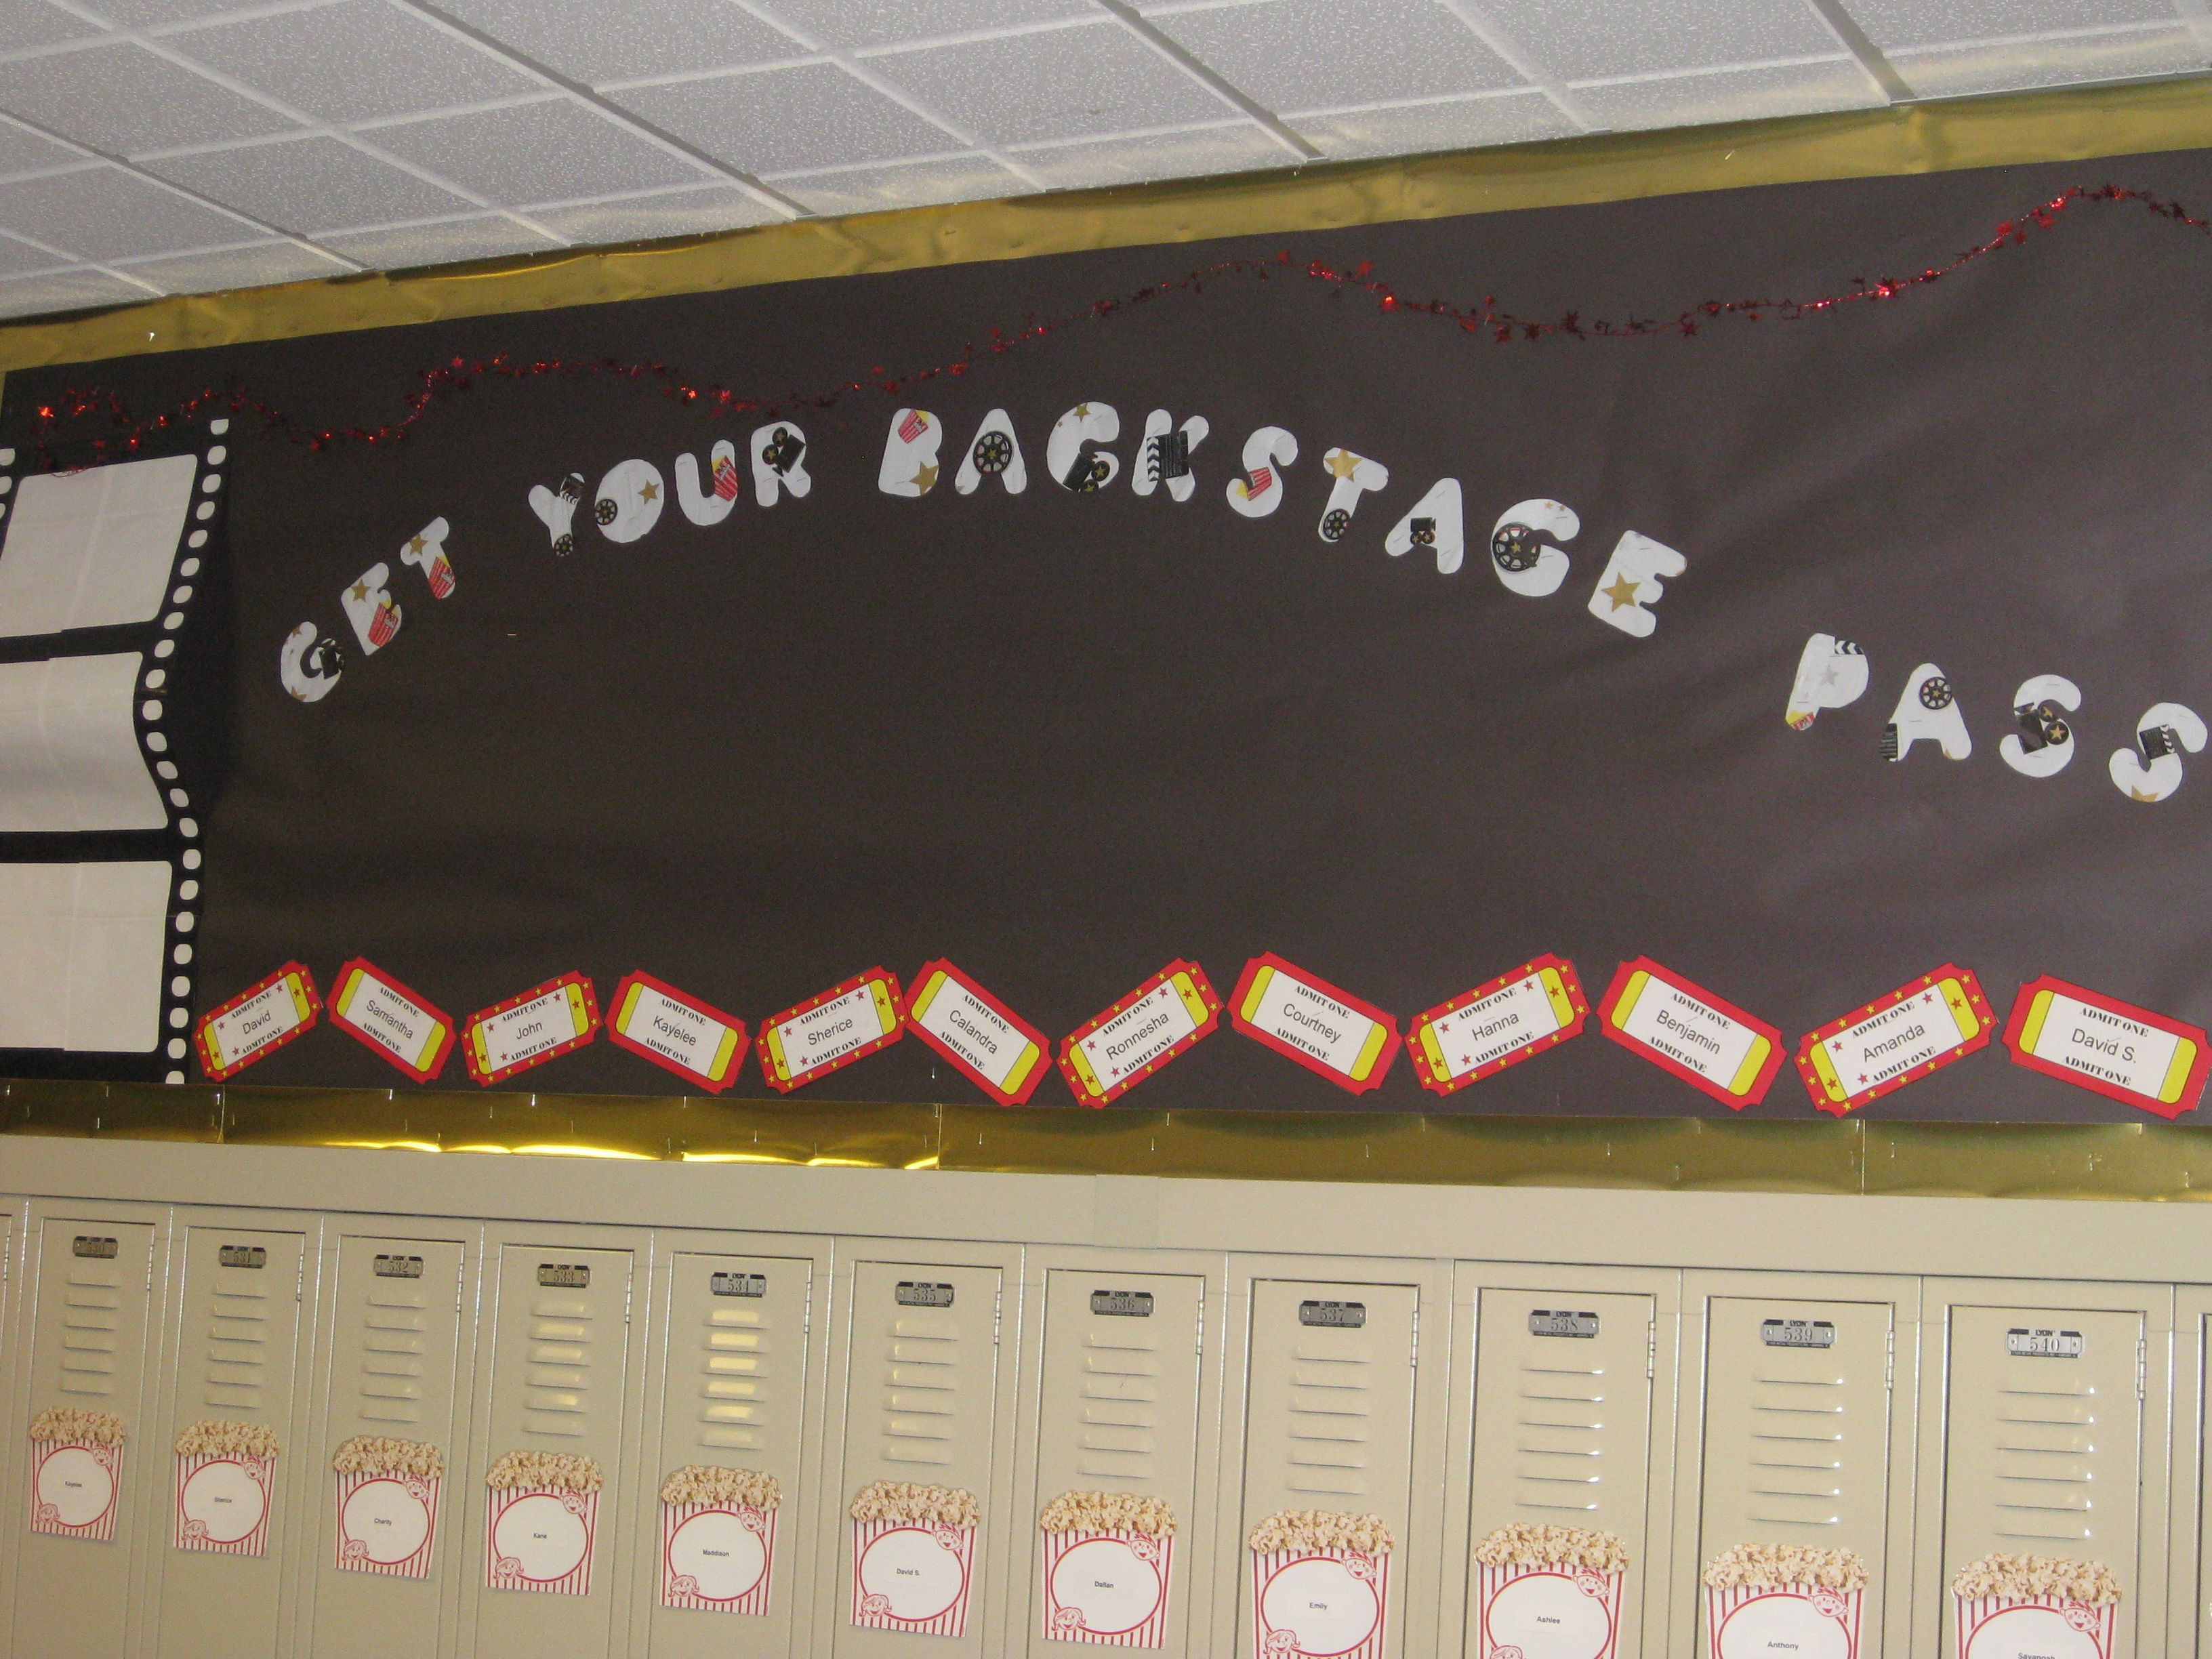 Get your backstage pass (I like the way that the tickets are turned and look cute!)